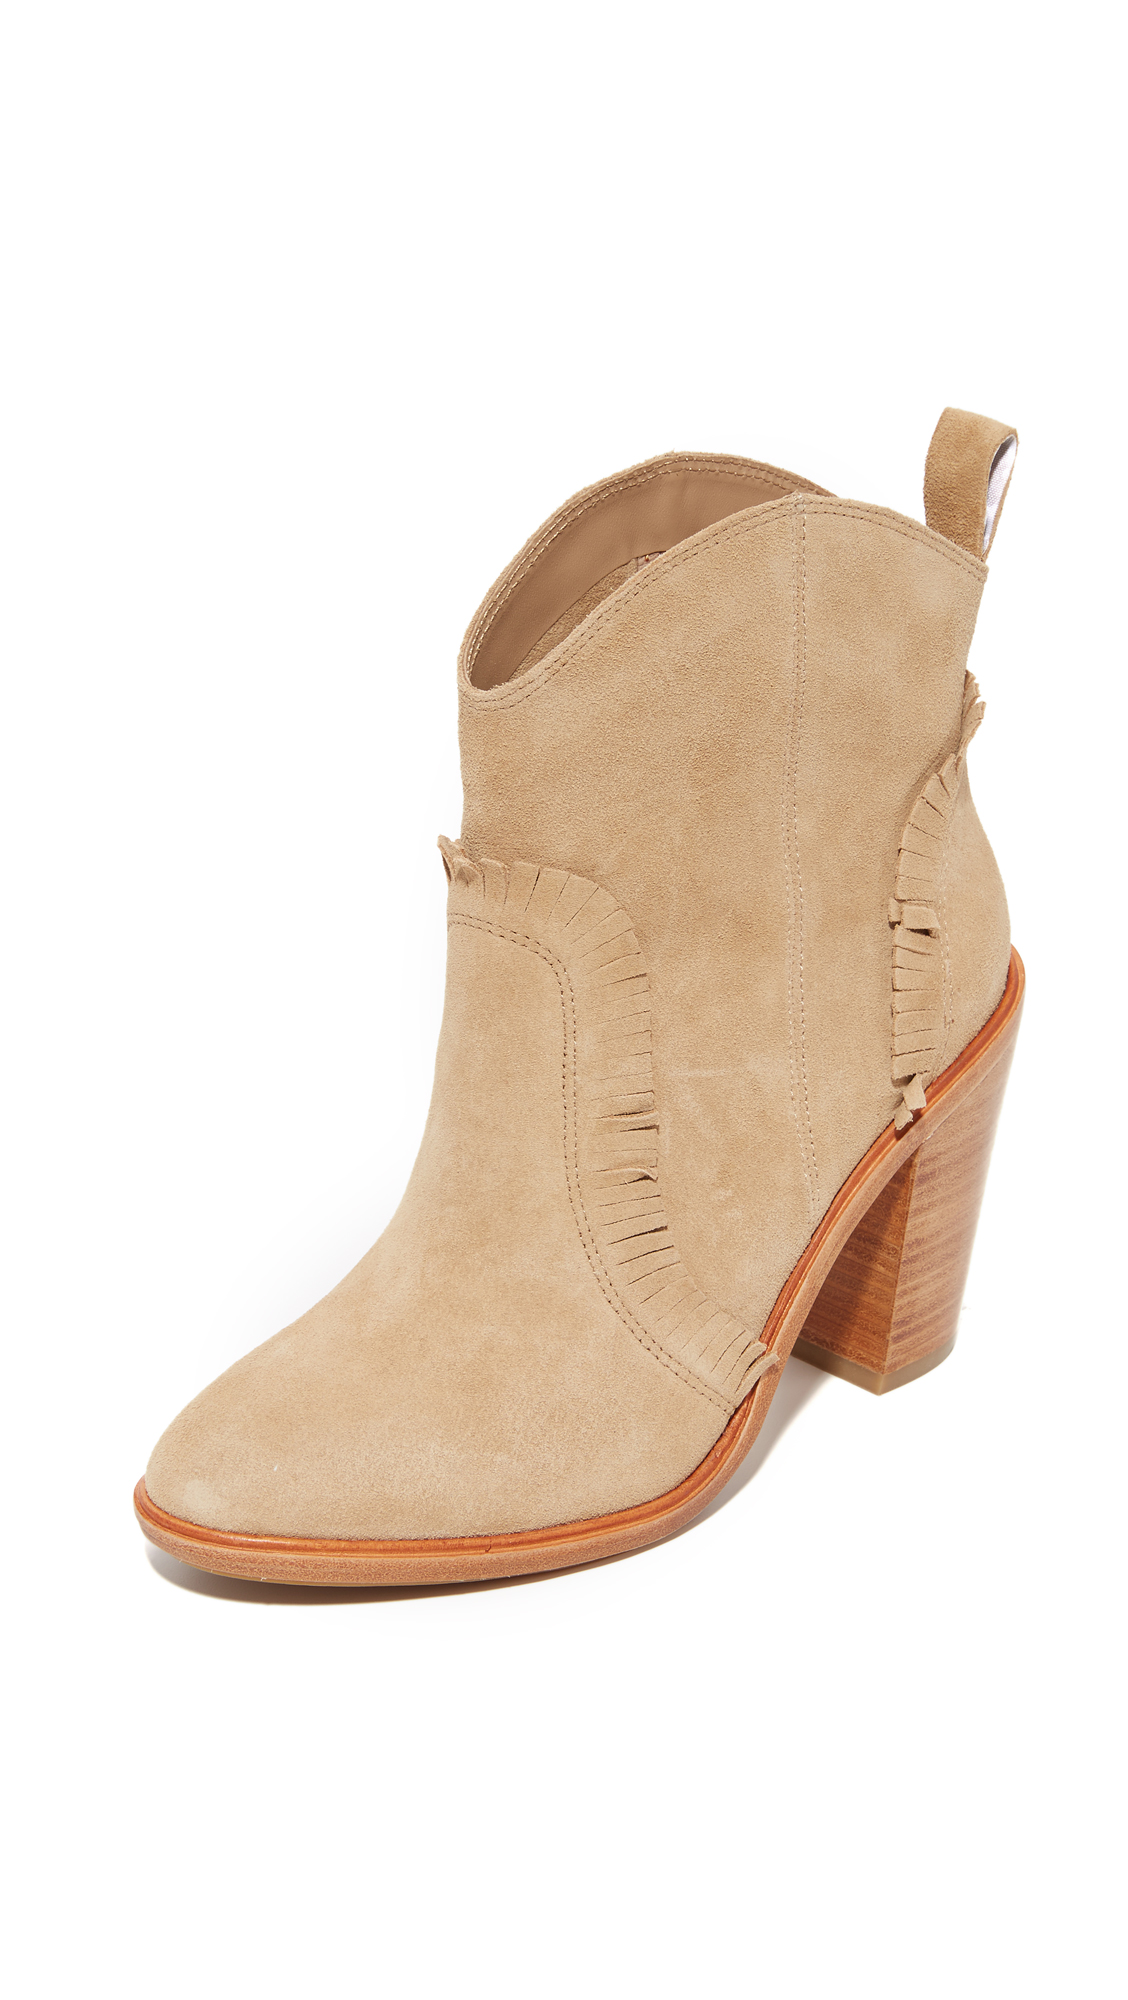 Joie Mathilde Booties - Buff